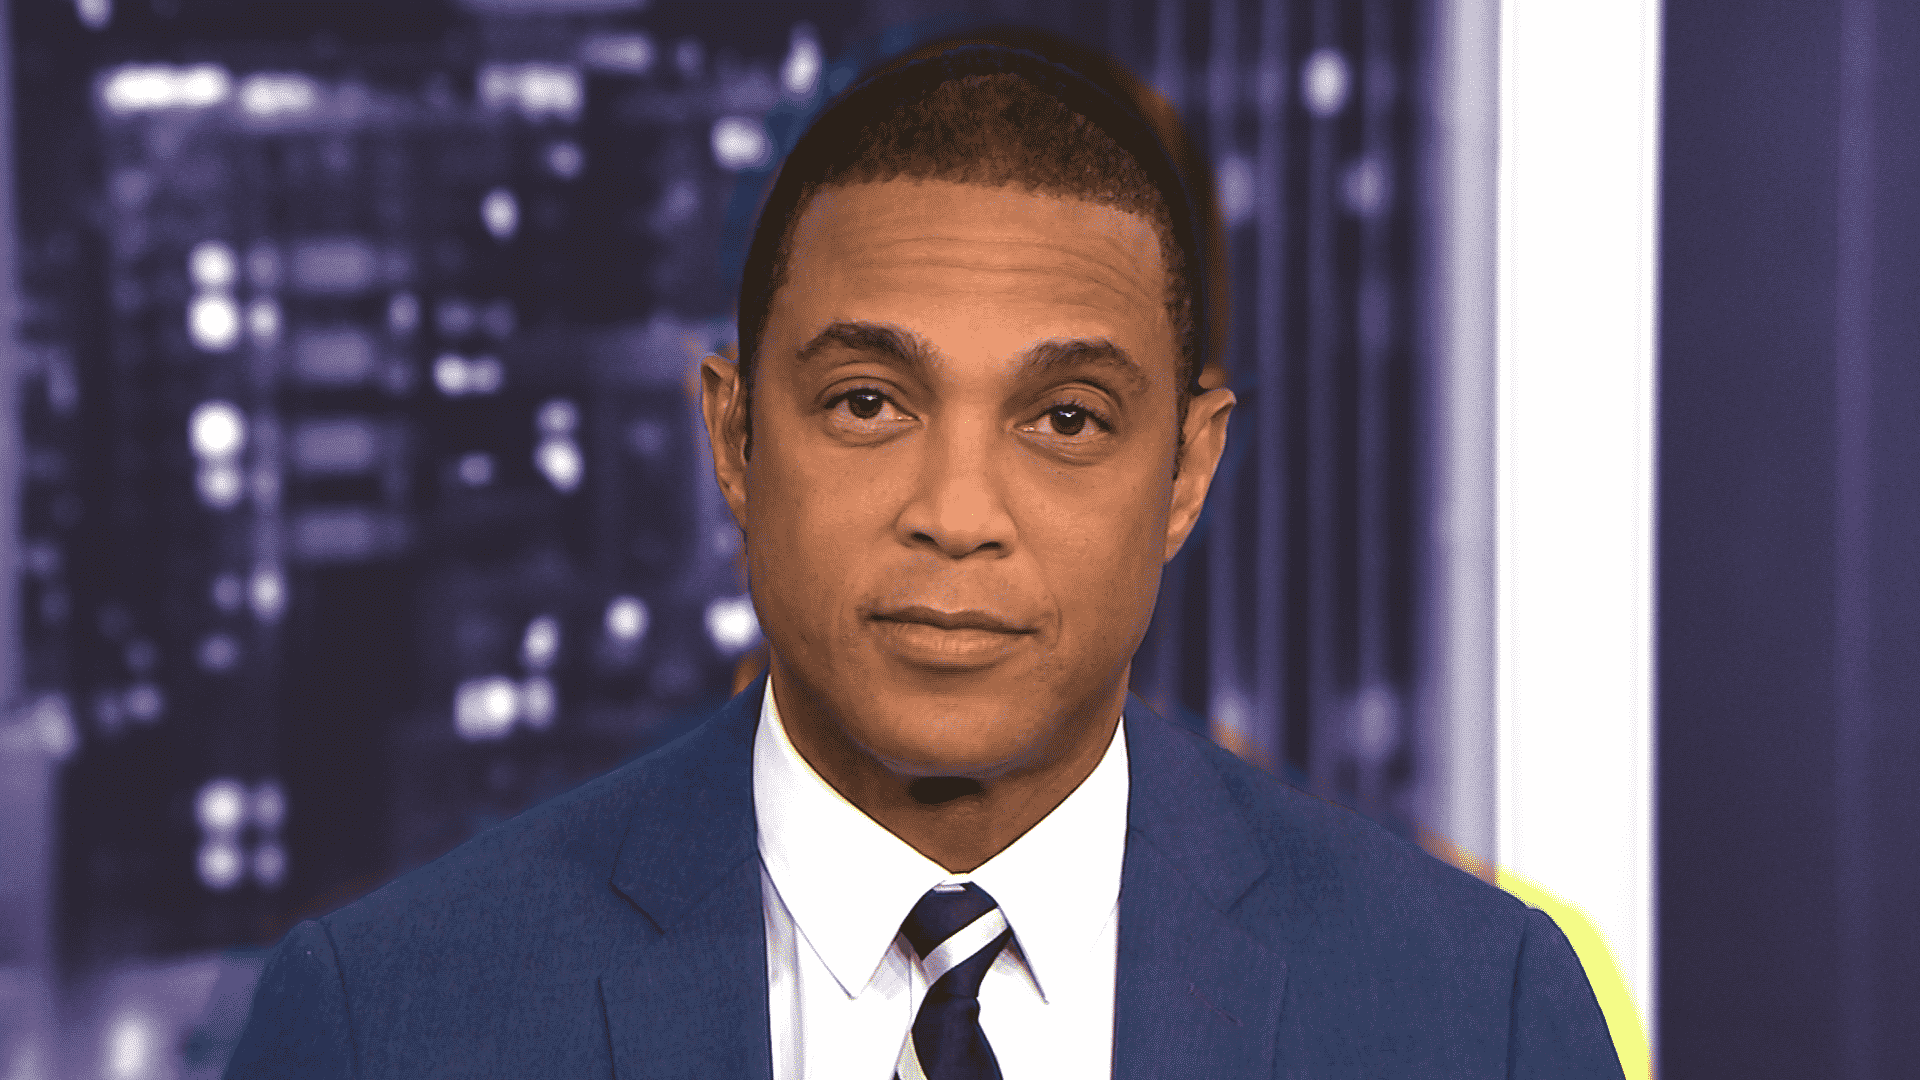 Don Lemon (CNN)